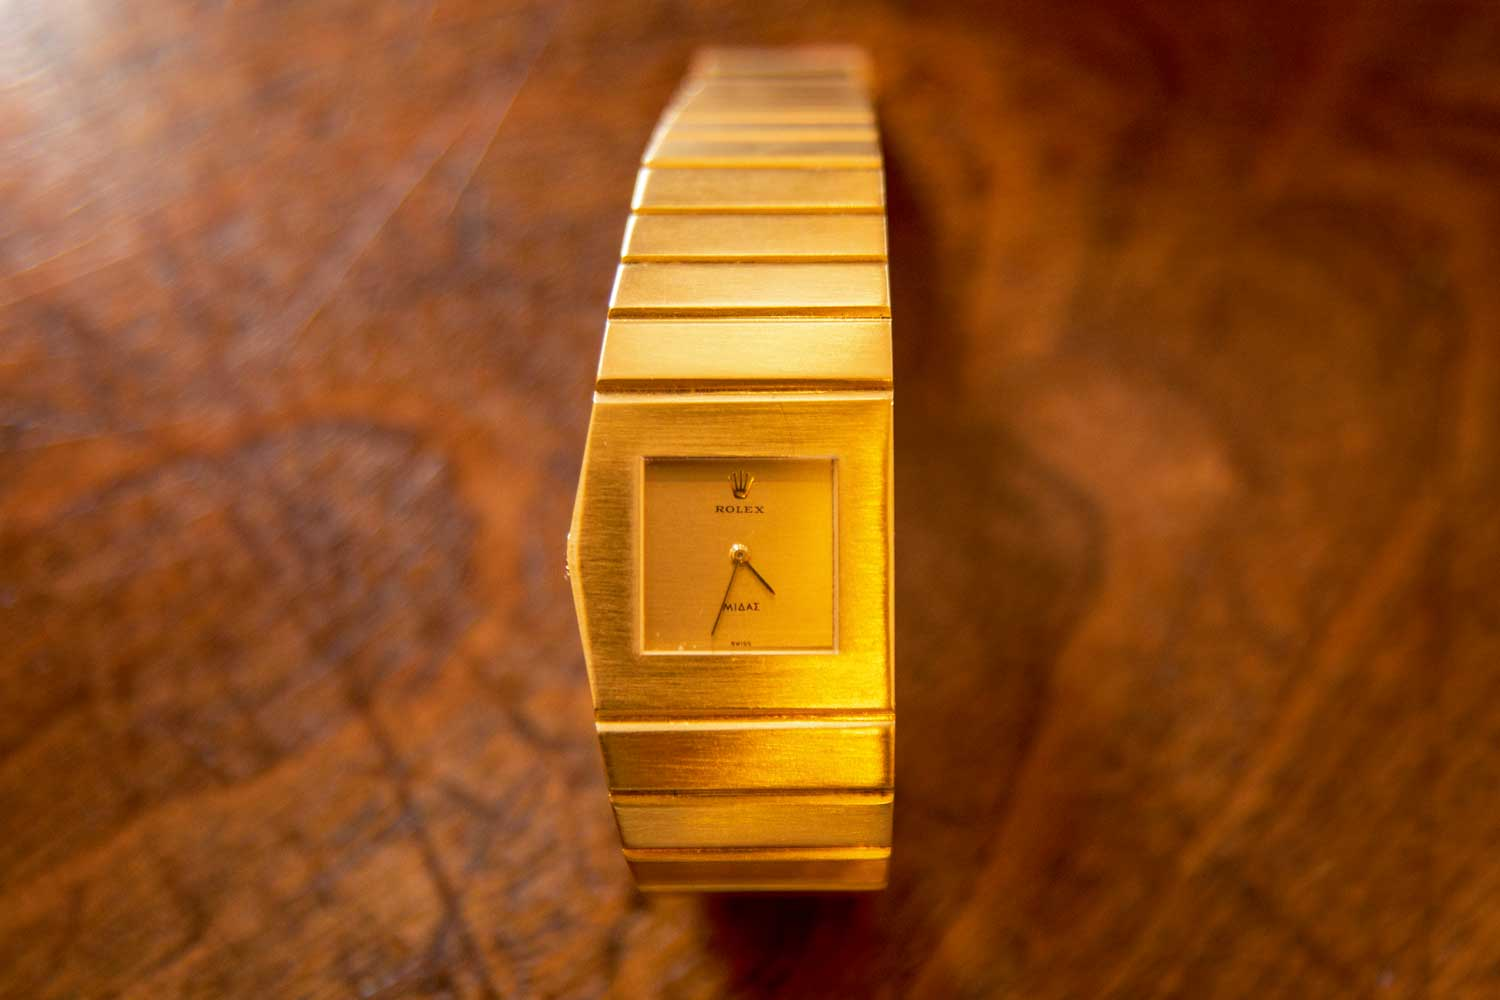 Nick Foulkes' own Rolex King MIdas Ref. 9630 (©Revolution)